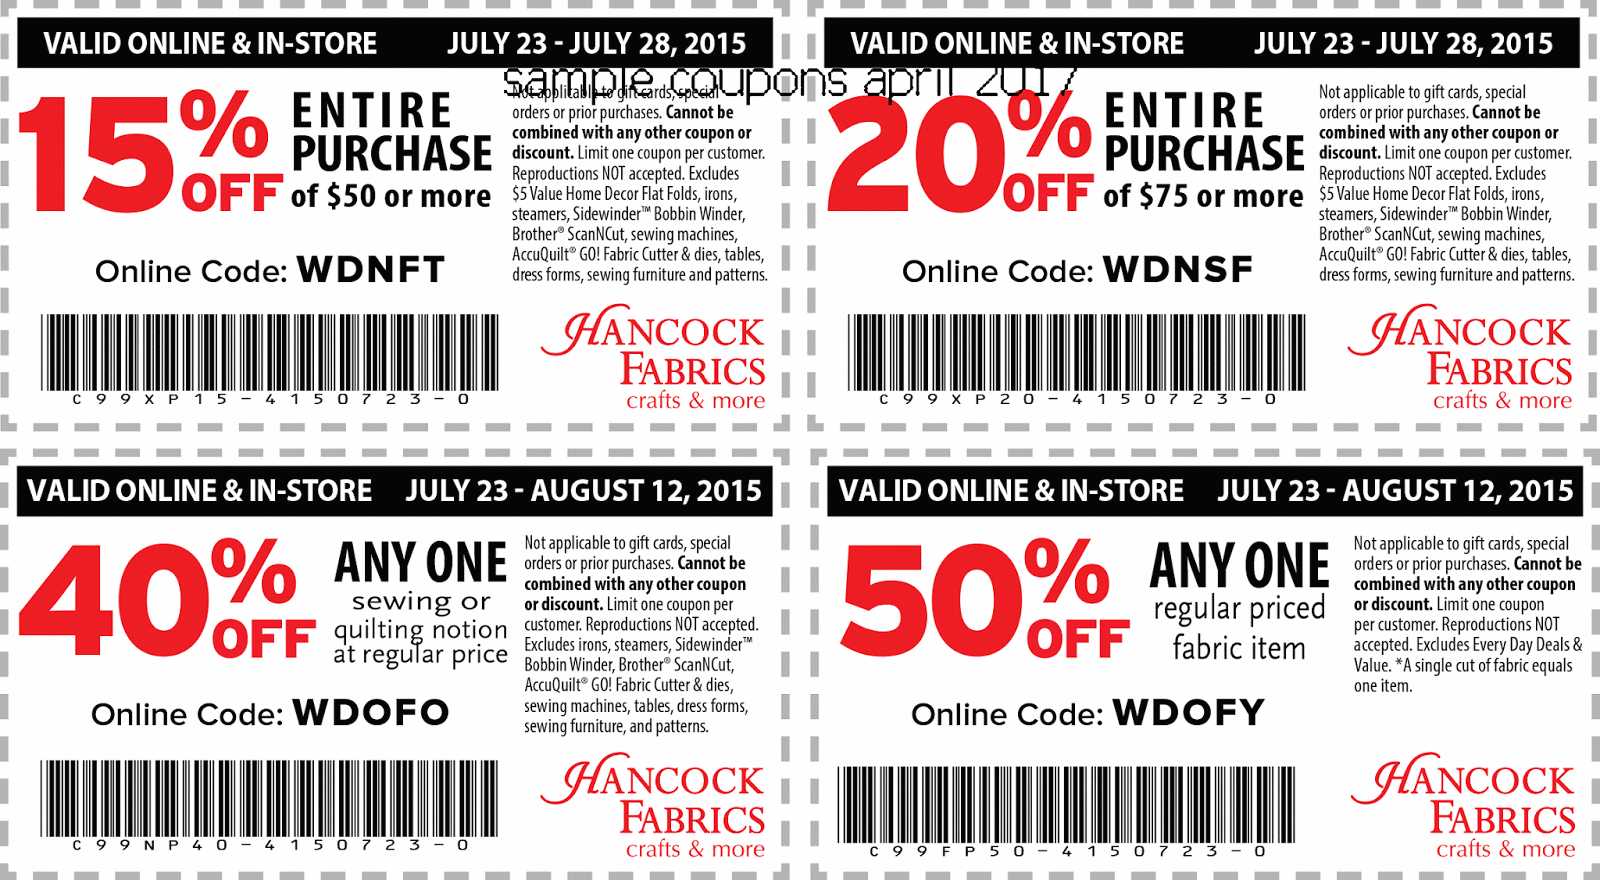 Coupons for hancock fabrics online - The best restaurant in